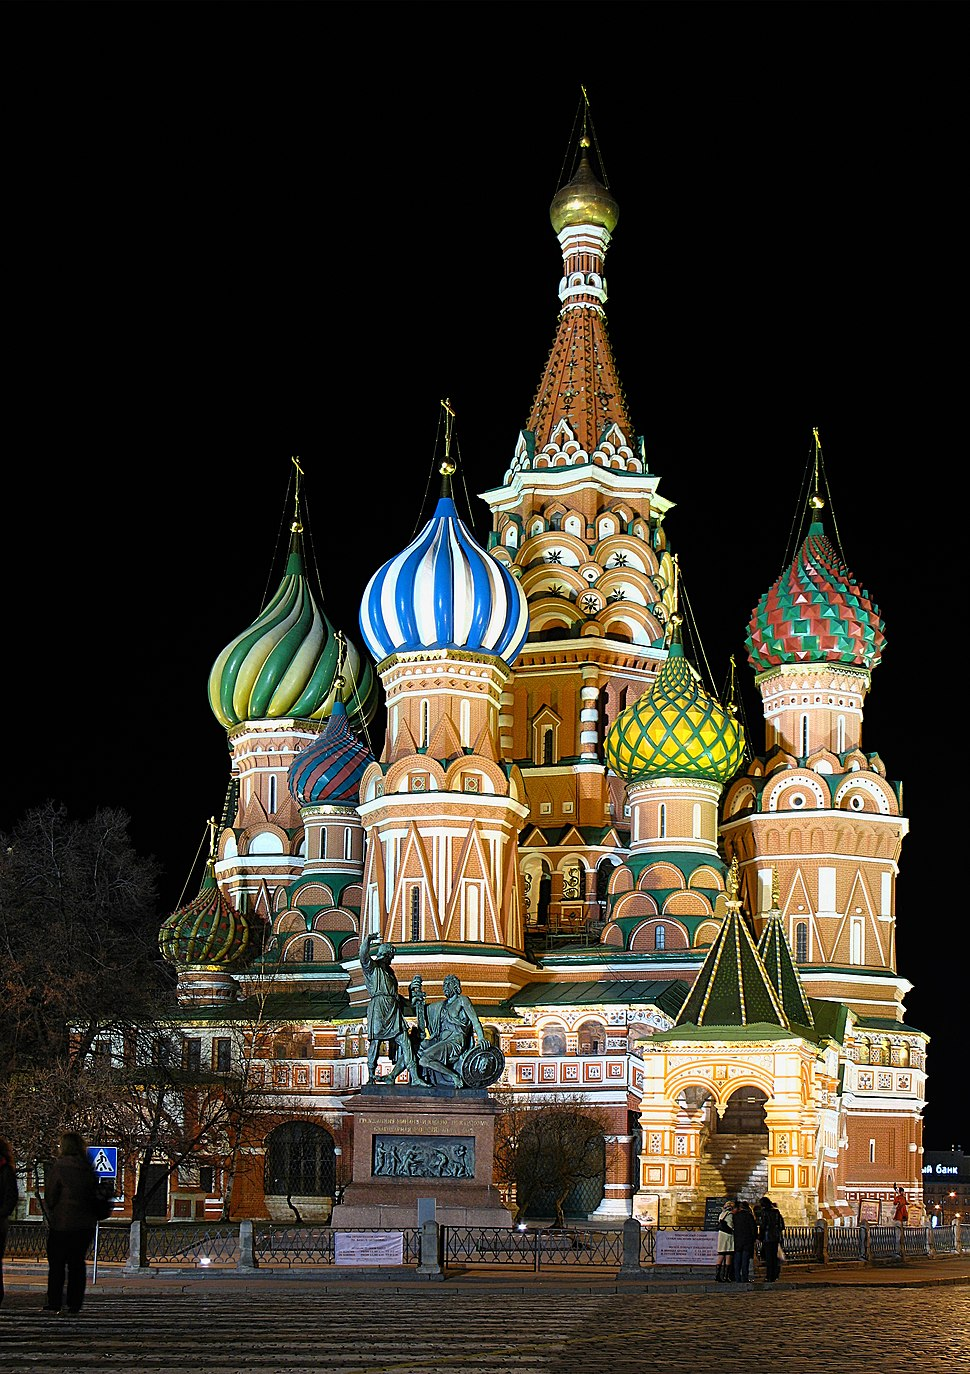 Sant Vasily cathedral in Moscow